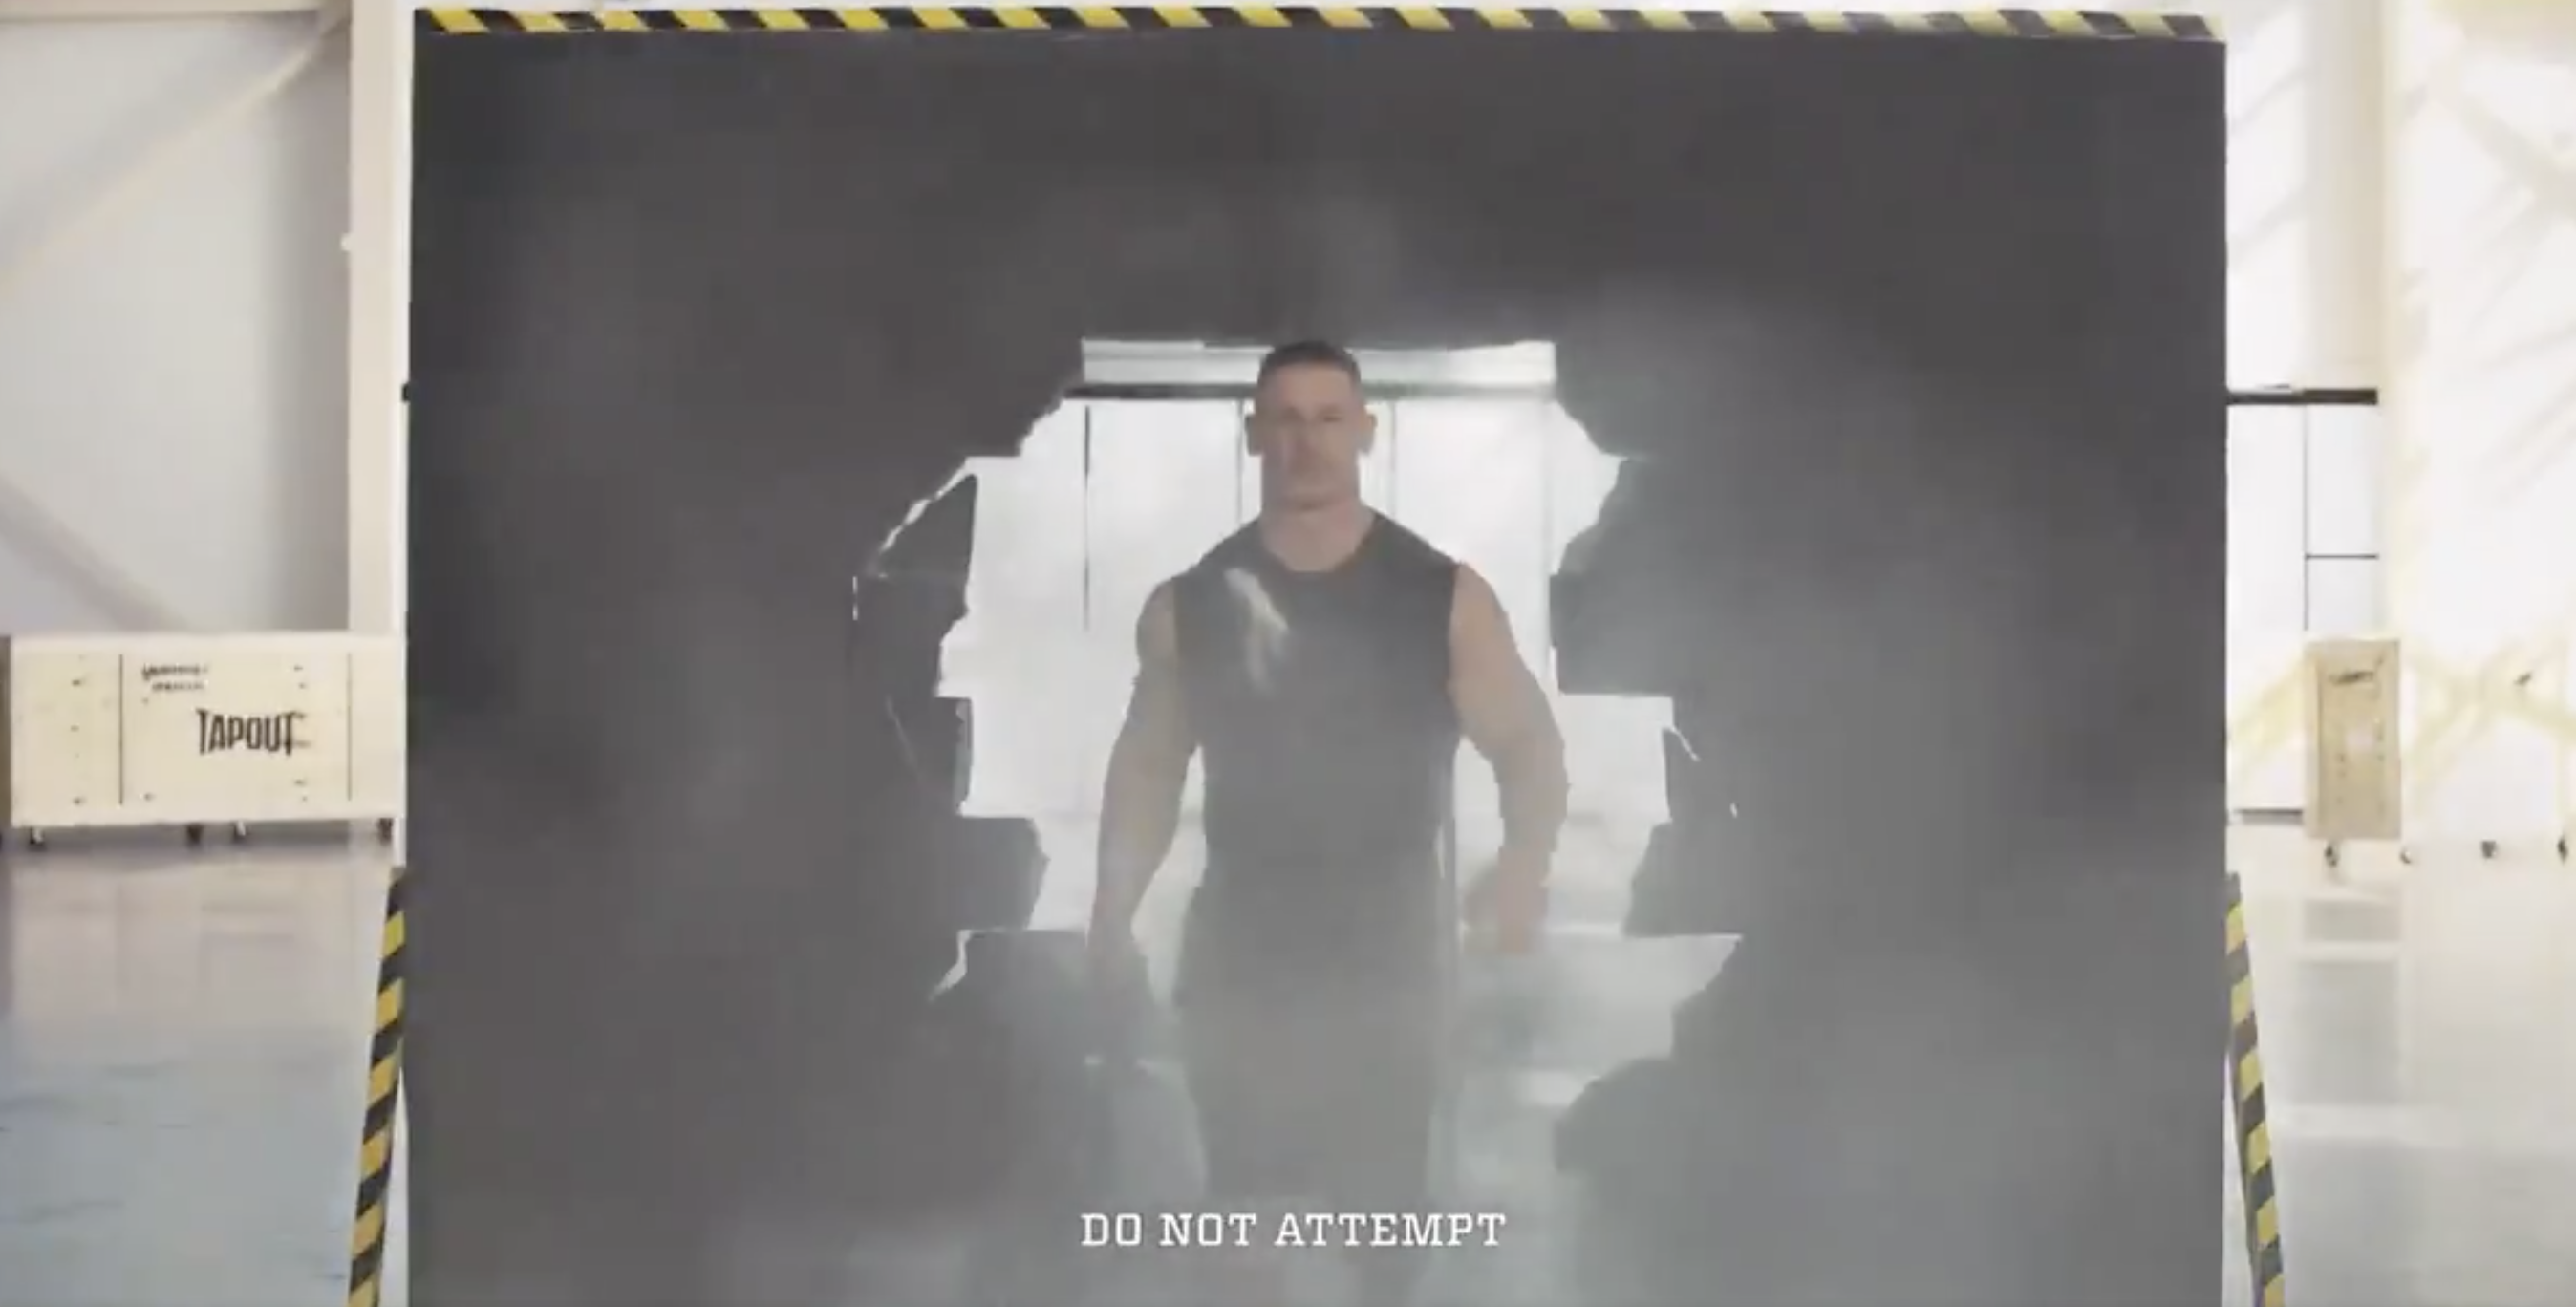 John Cena Tapout Body Spray commercial